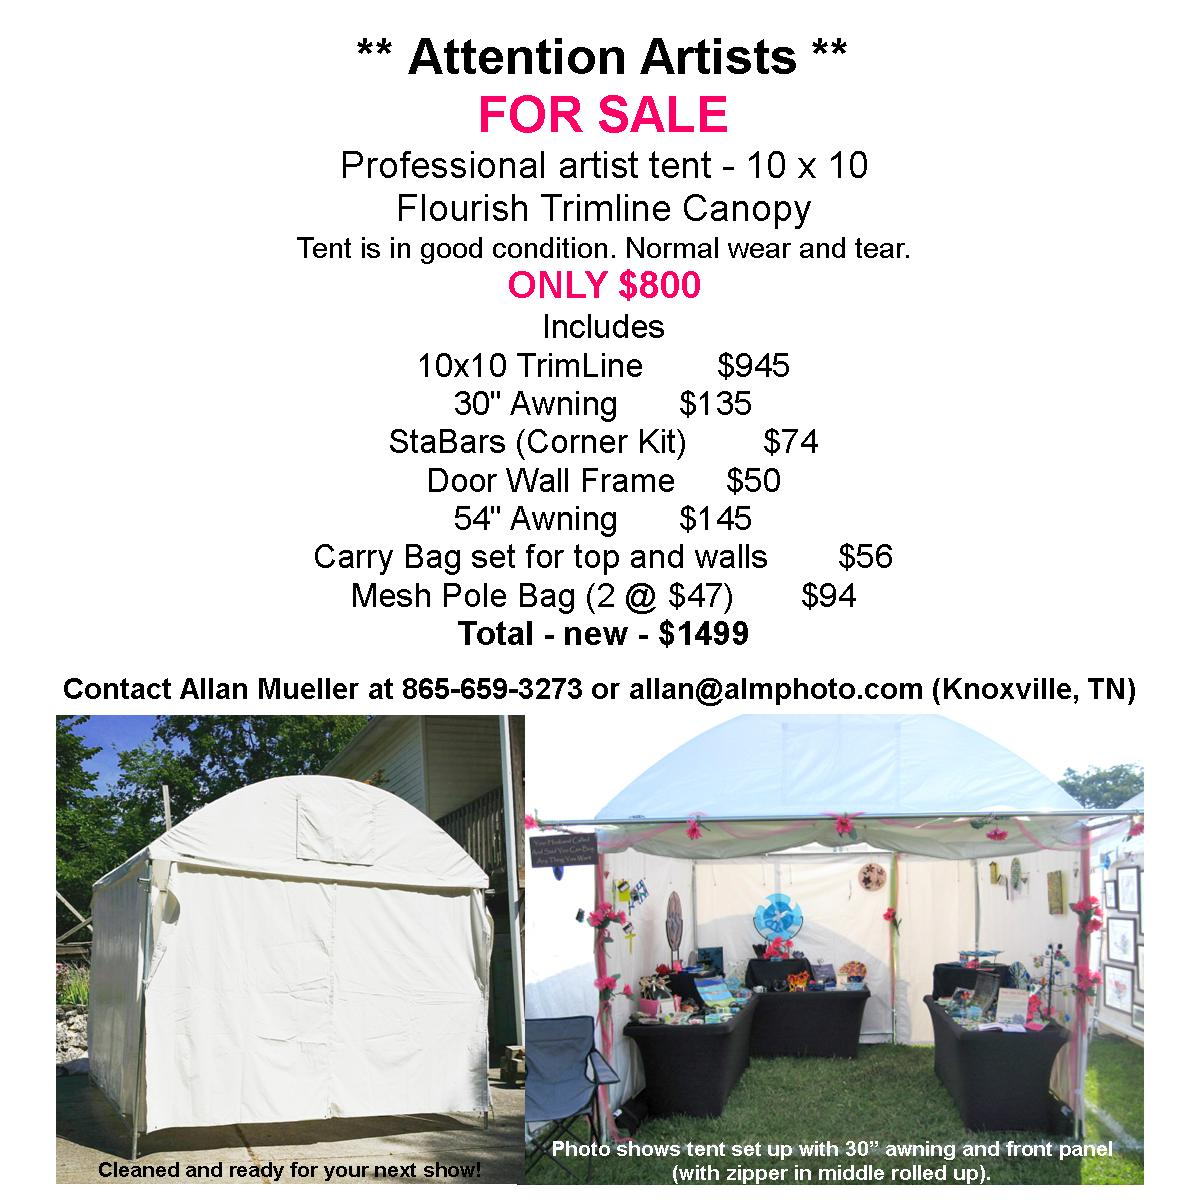 Flourish Trimline Canopy for sale Sassy Glass Studio Knoxville TN  sc 1 st  Sassy Glass Studio & Sassy Glass Studio :: All Things Sassy: Professional Artist Tent ...